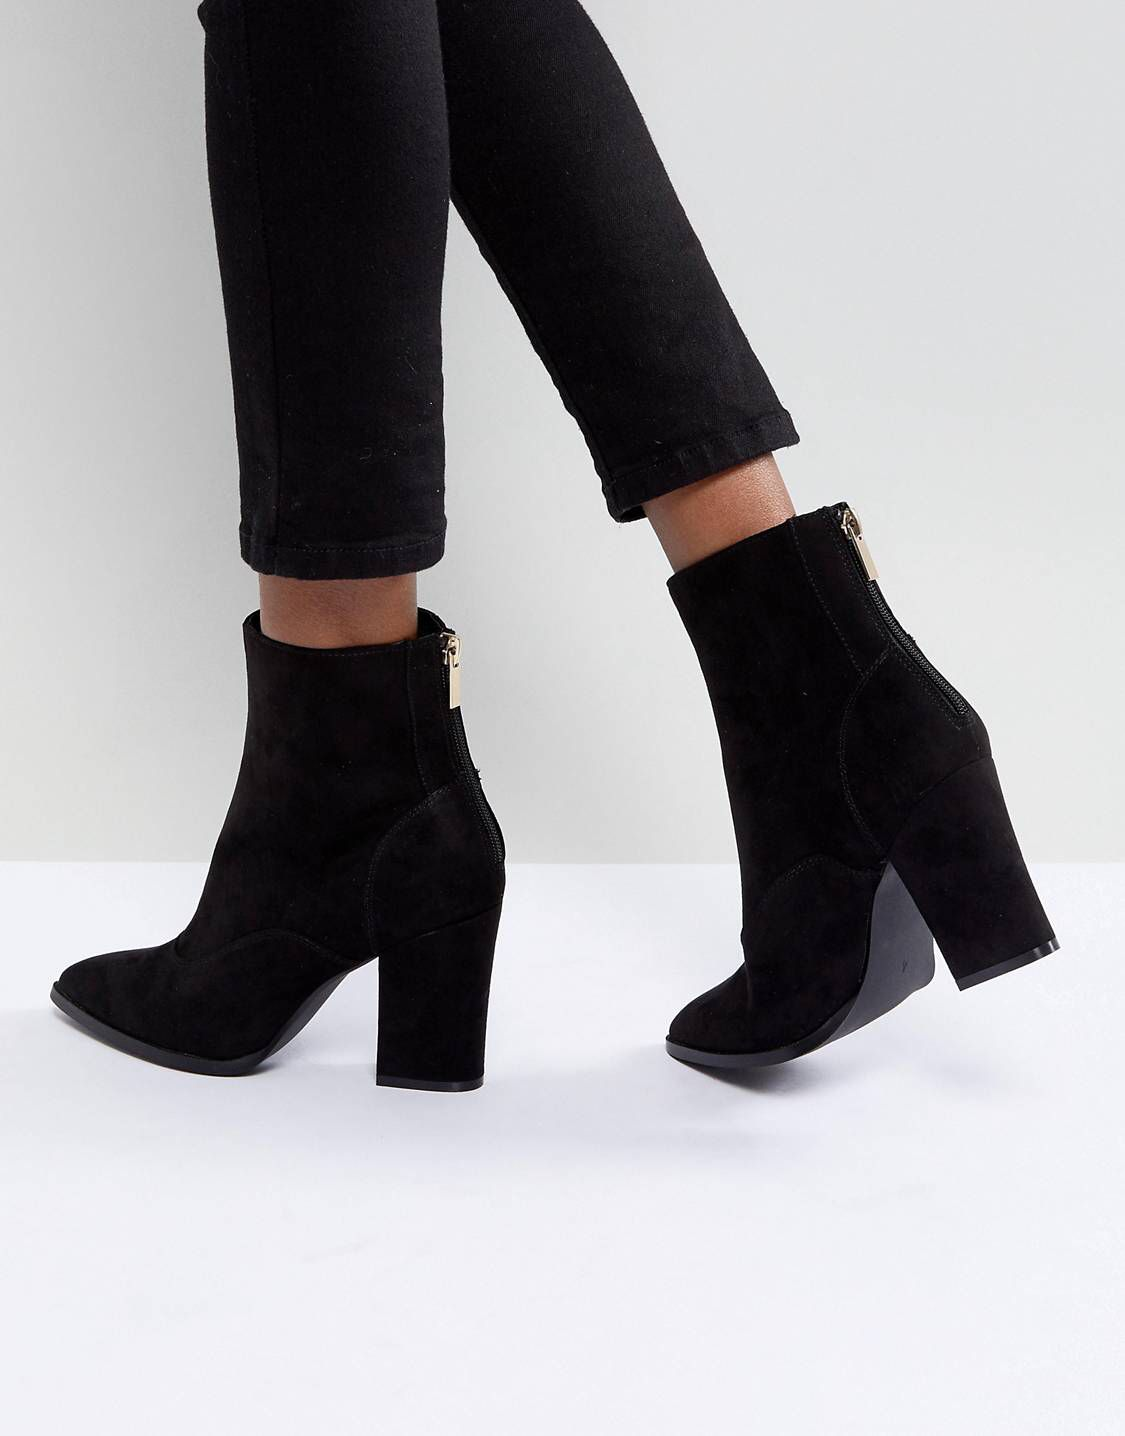 River Island Pointed Toe Heeled Boots